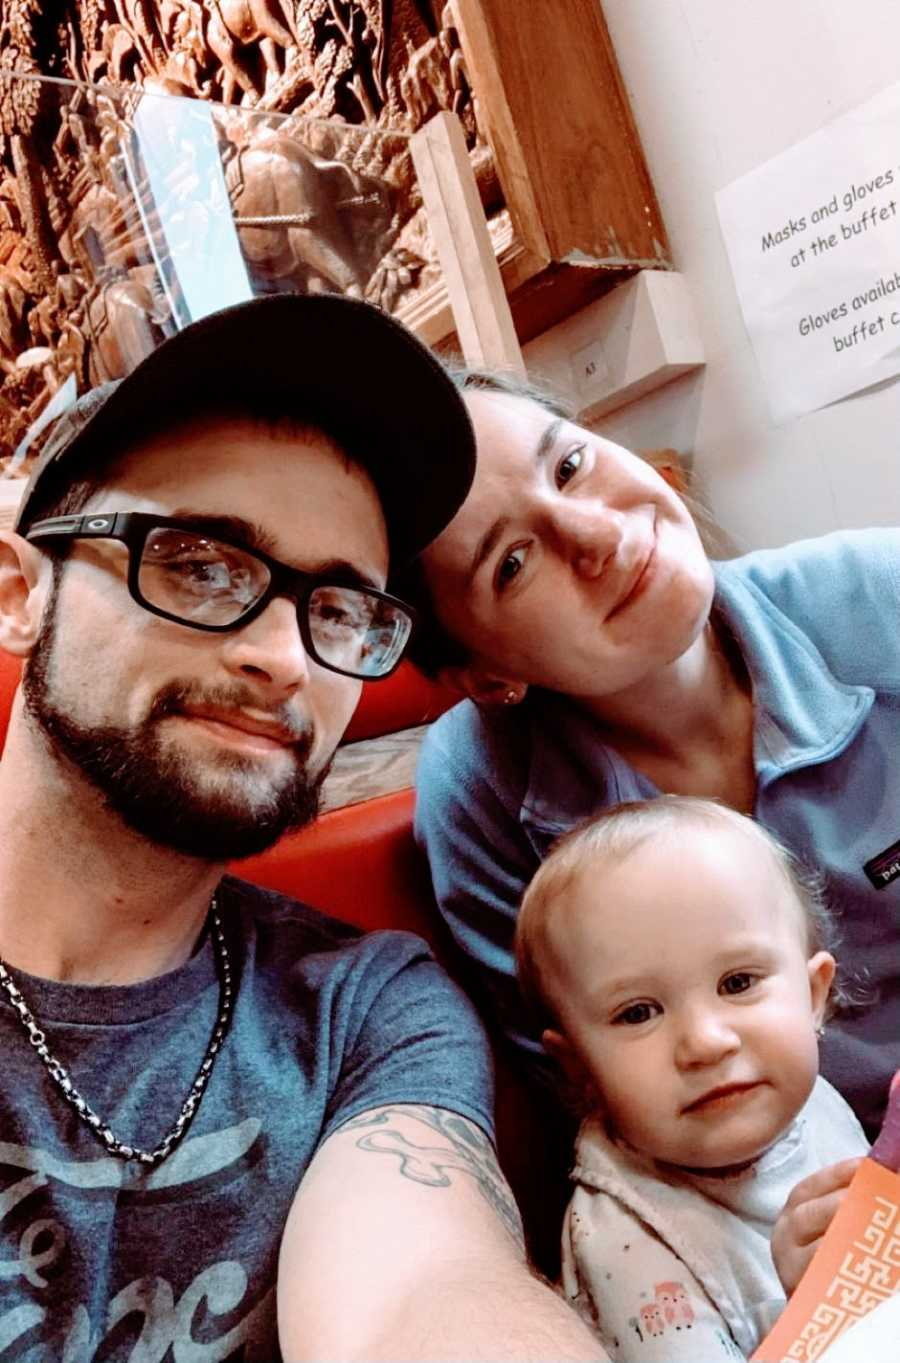 Family of three take a selfie together while out at a buffet for dinner